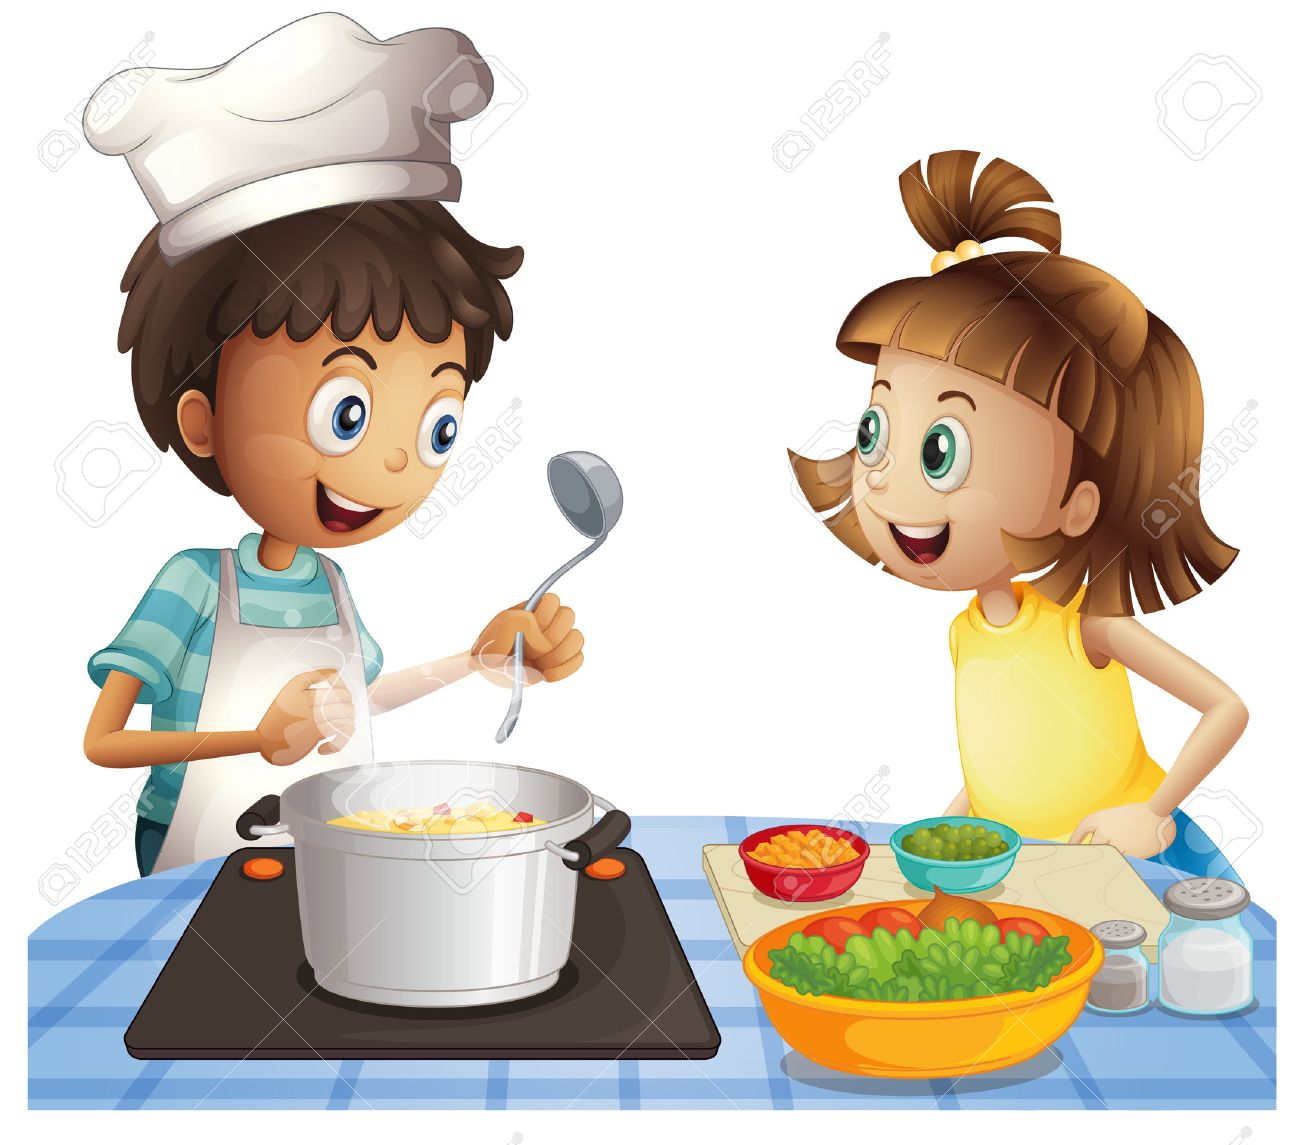 Illustration of two children cooking.